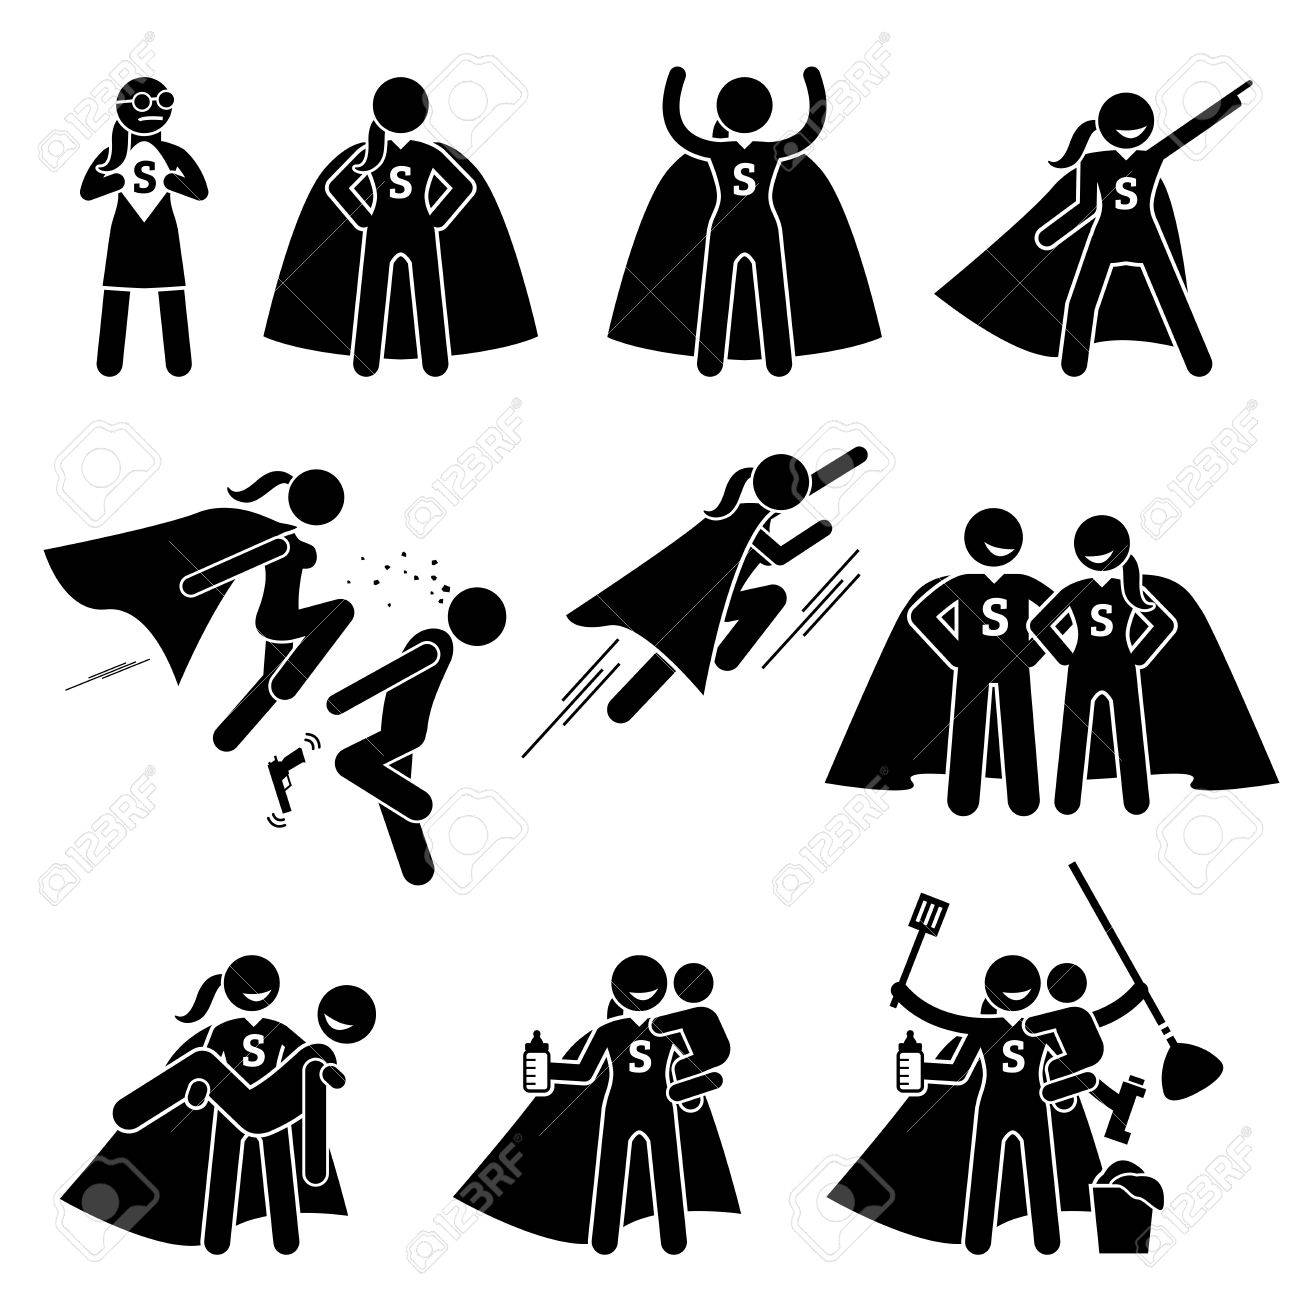 Superwoman Heroine Female Superhero. Cliparts depicts a superwoman in various poses and actions. She is also a busy supermom that can do housework and care for her family. - 78598685